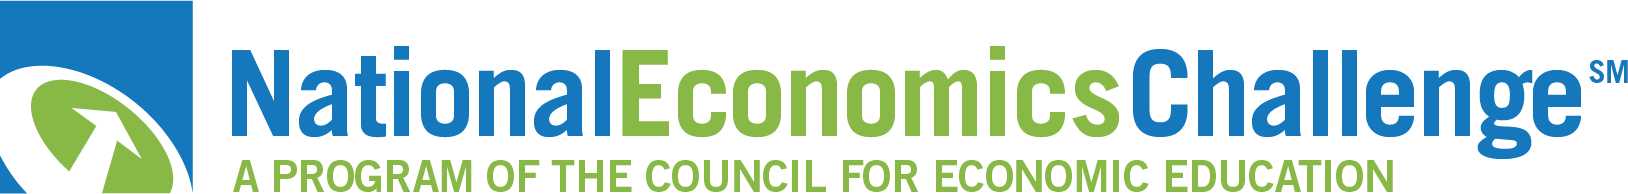 National Economics Challenge logo